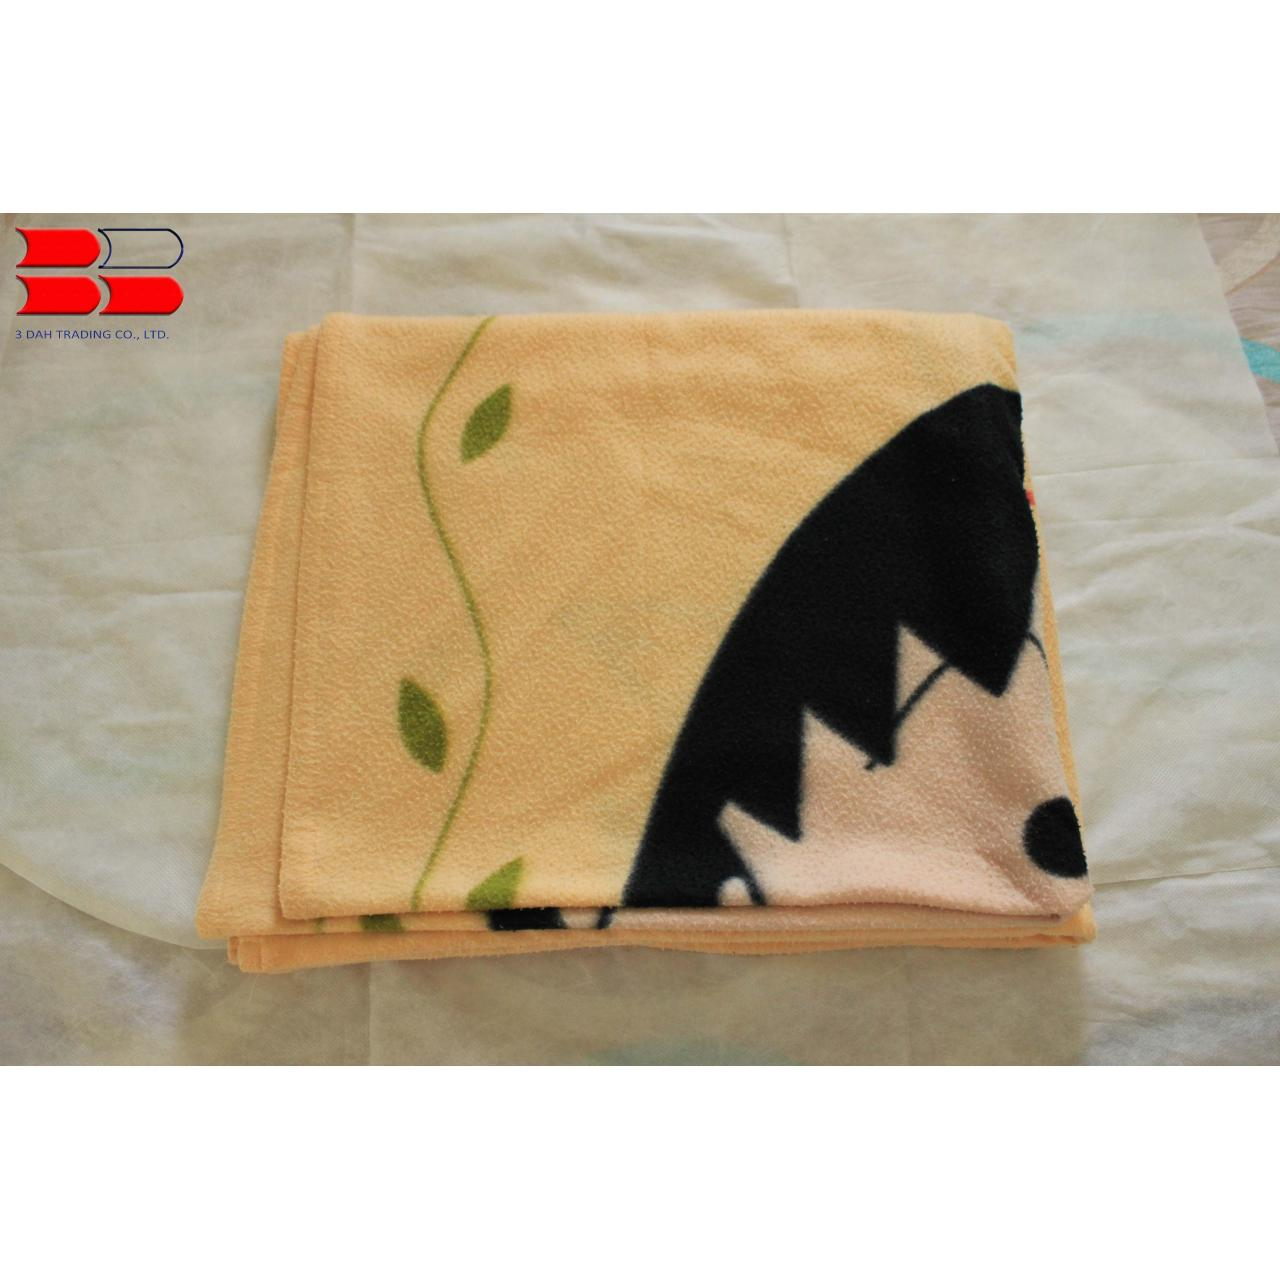 Cheap Used Blanket - Light for sale